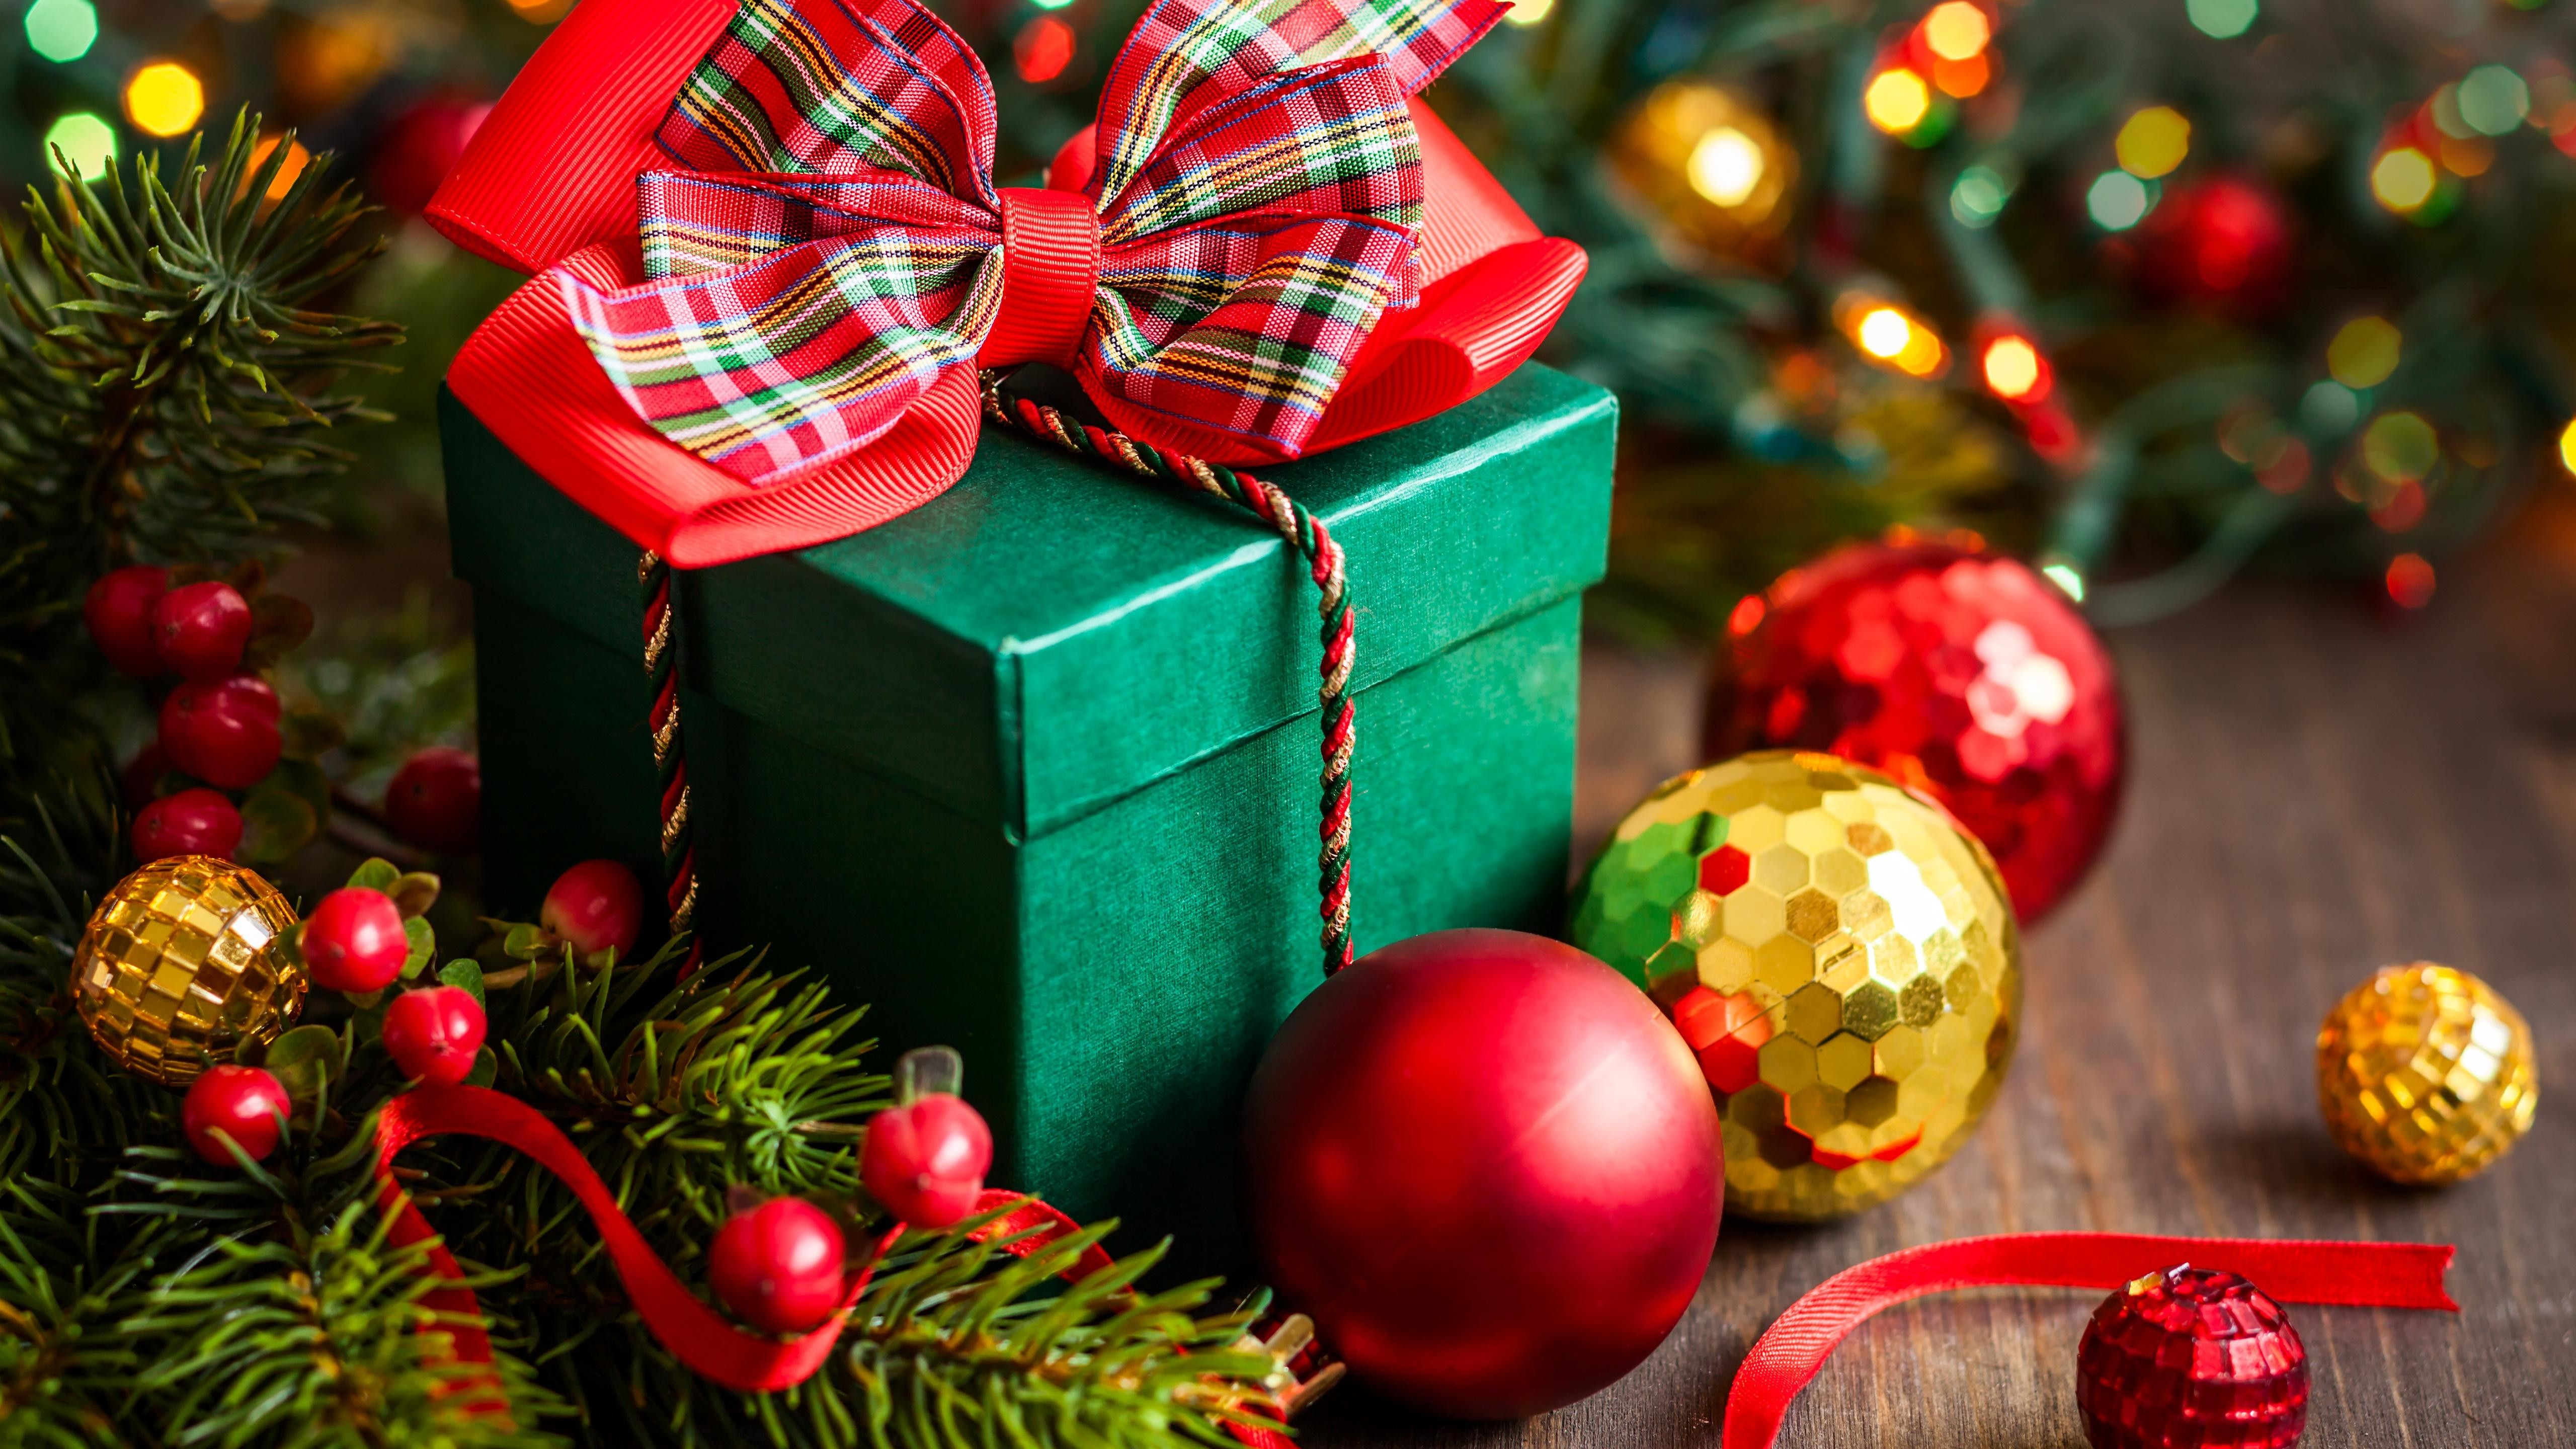 Christmas Decoration And Gift Wallpaper 5k Ultra Hd Id 4235